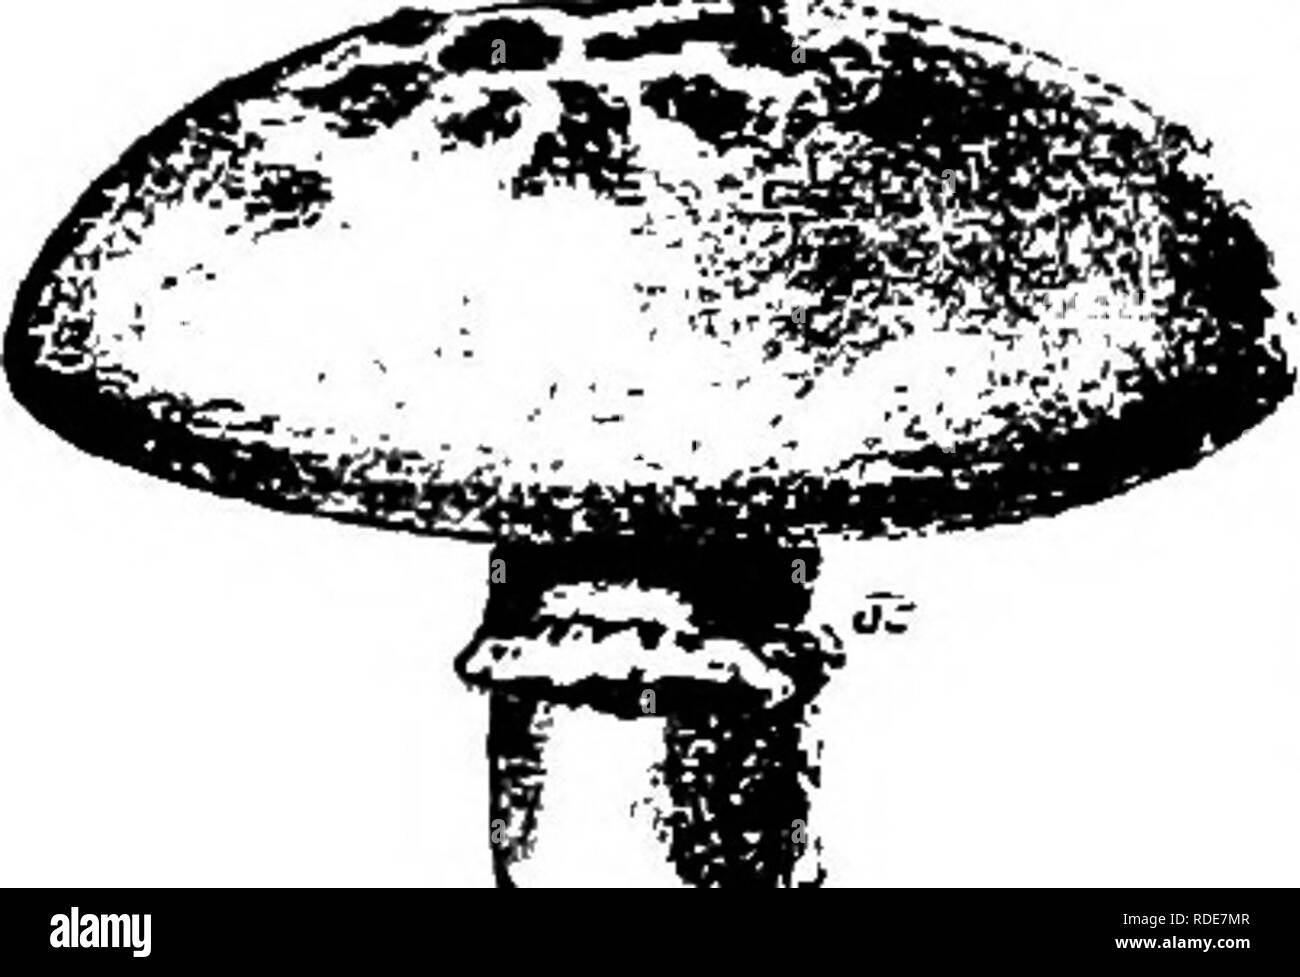 . Mushrooms : how to grow them : a practical treatise on mushroom culture for profit and pleasure . Mushrooms. IKSKCT AND OTHER ENEMIES. 125 diseased it continues to be diseased, and it is a fact that if one mushroom in a clump has black spot we usually find that every mushroom in the clump has it. But mushrooms growing from the same bit of spawn and that come up an inch or two away from the spotted ones may be perfectly clean. Black spot has never occurred witli me in new beds, and seldom in those in vigorous bearing, but it generally appears in beds that have been in bearing condition for so - Stock Image